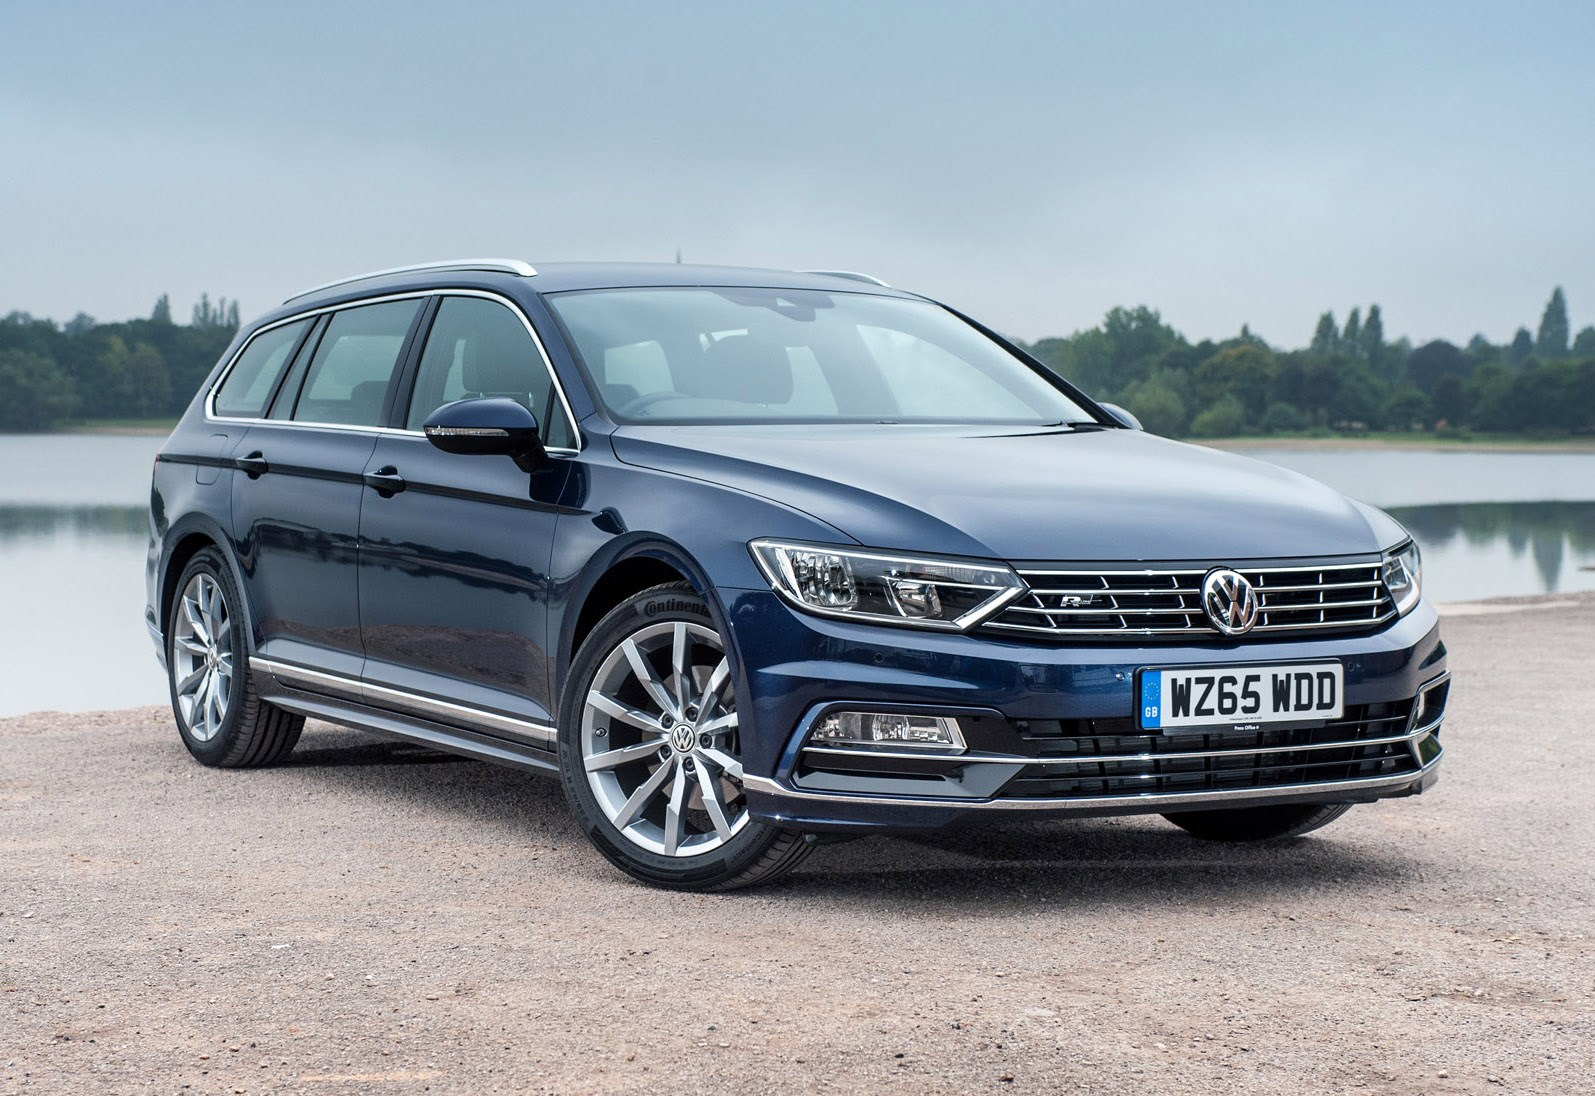 Best estate cars for golfers | Parkers